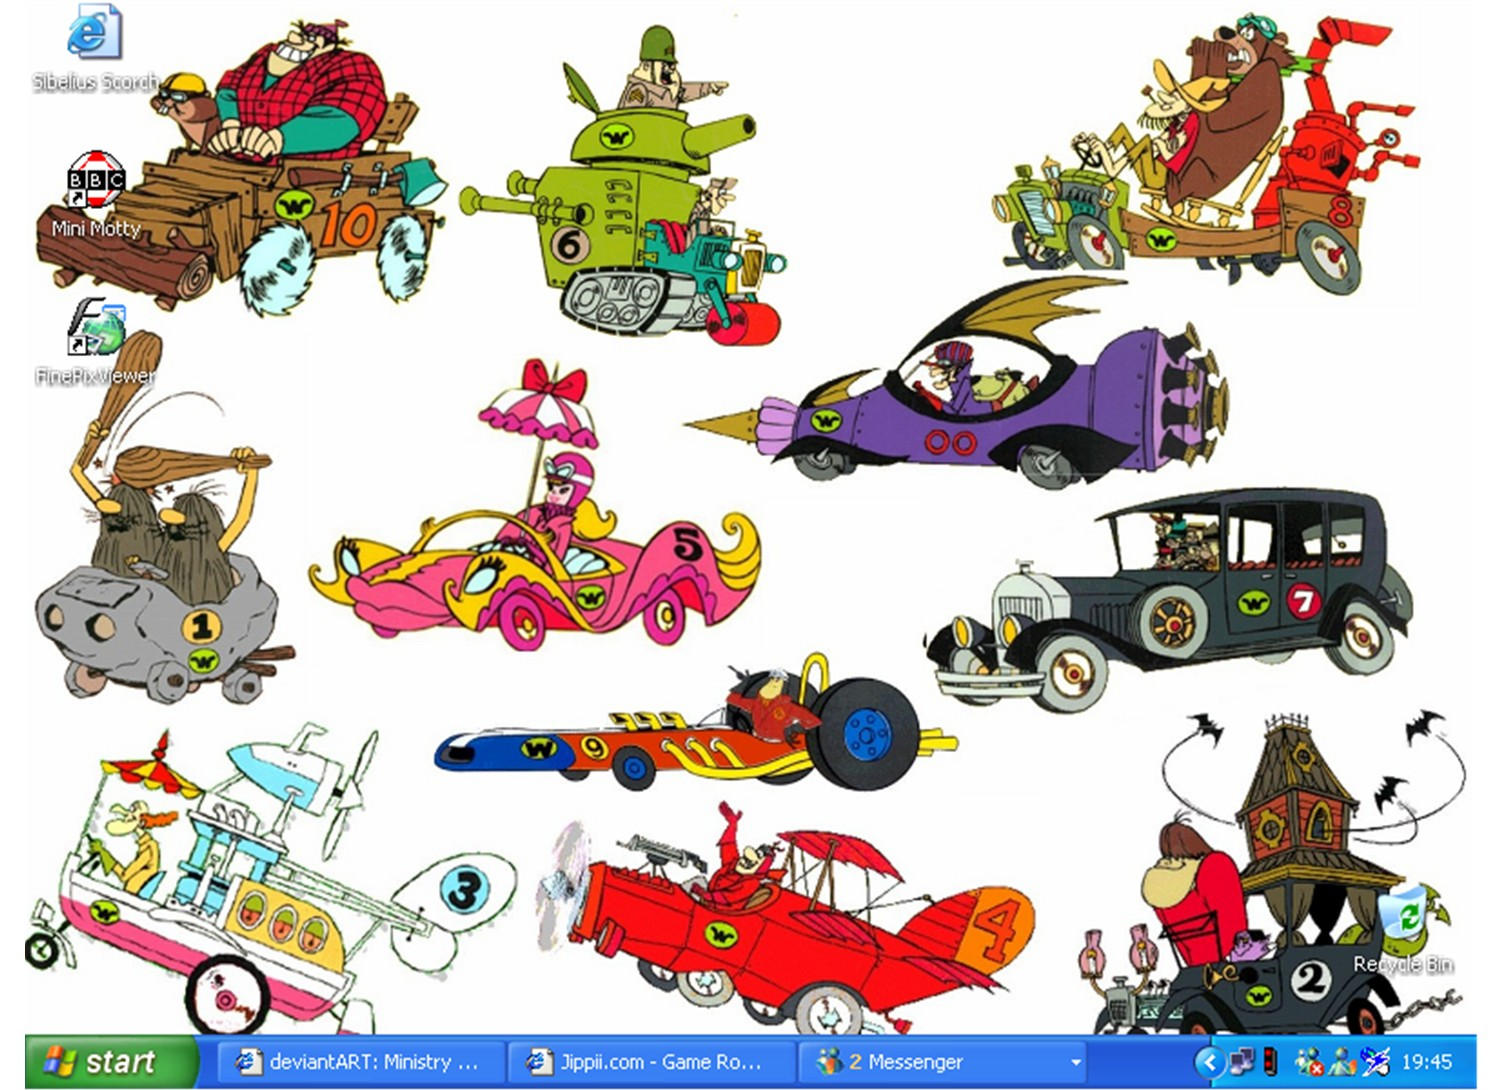 Wacky Races by bluestar63 on DeviantArt